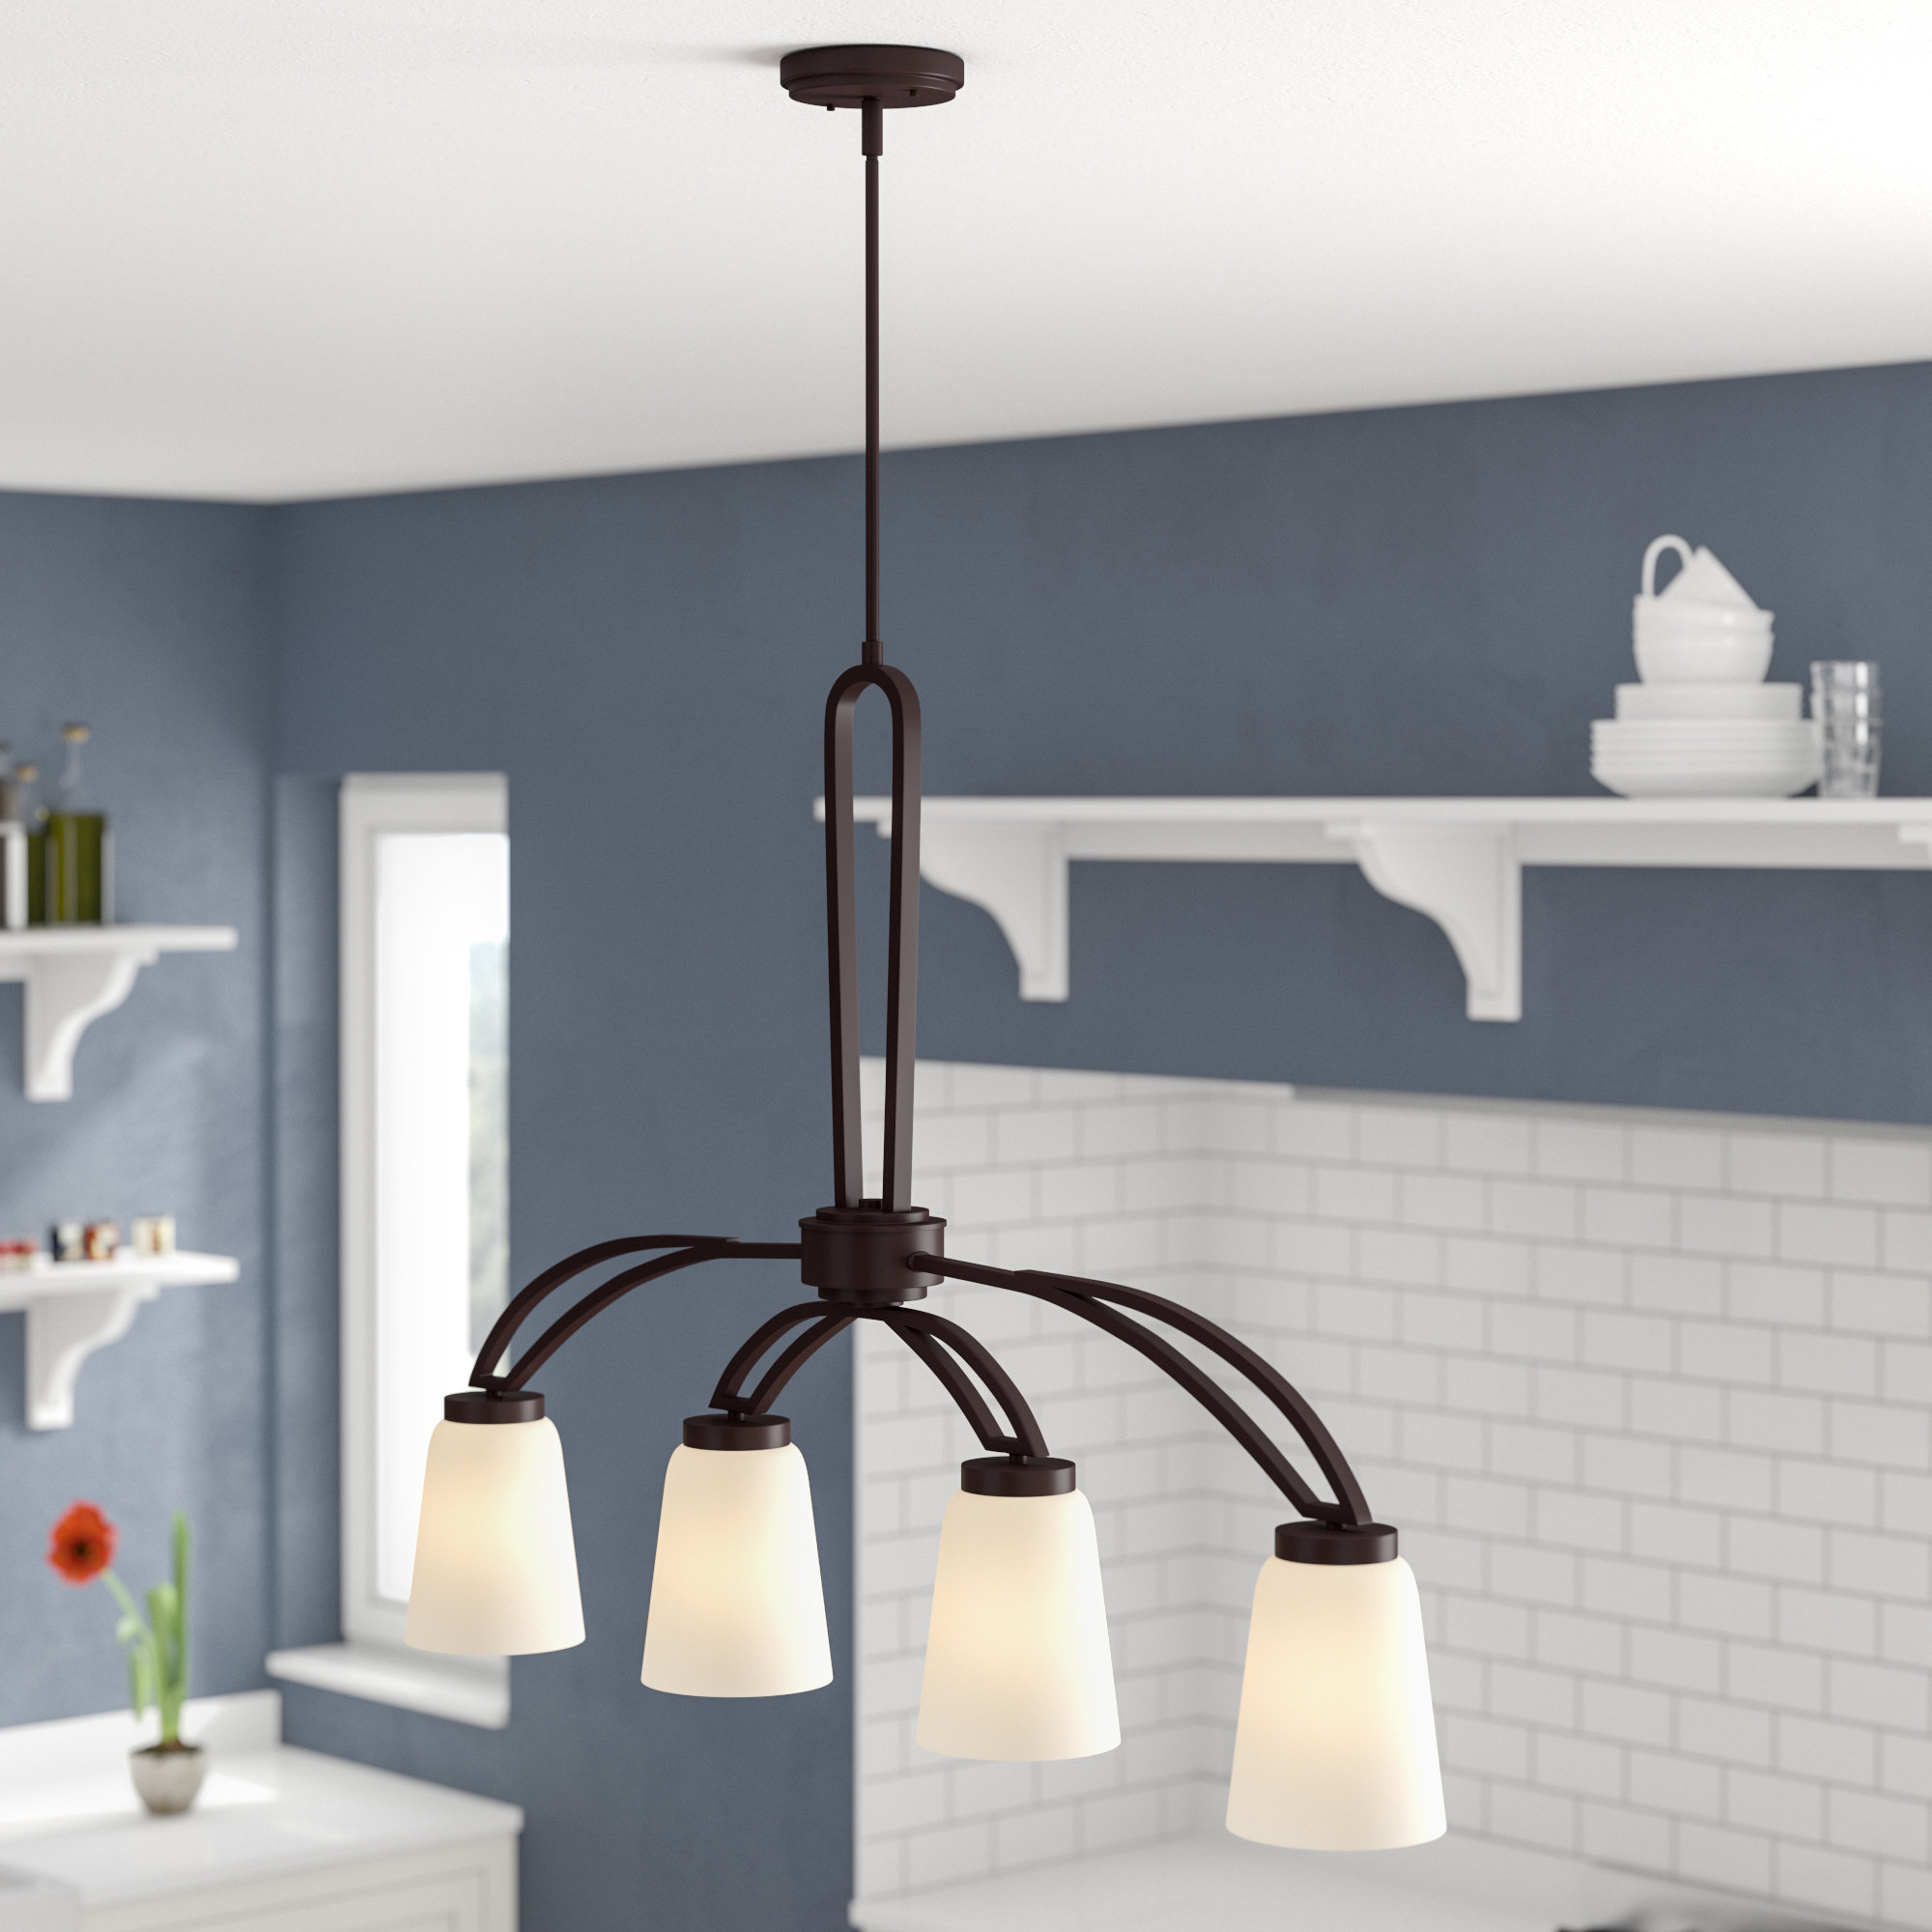 Smithville 4 Light Kitchen Island Pendants Pertaining To Recent Casias 4 Light Kitchen Island Pendant (View 15 of 20)